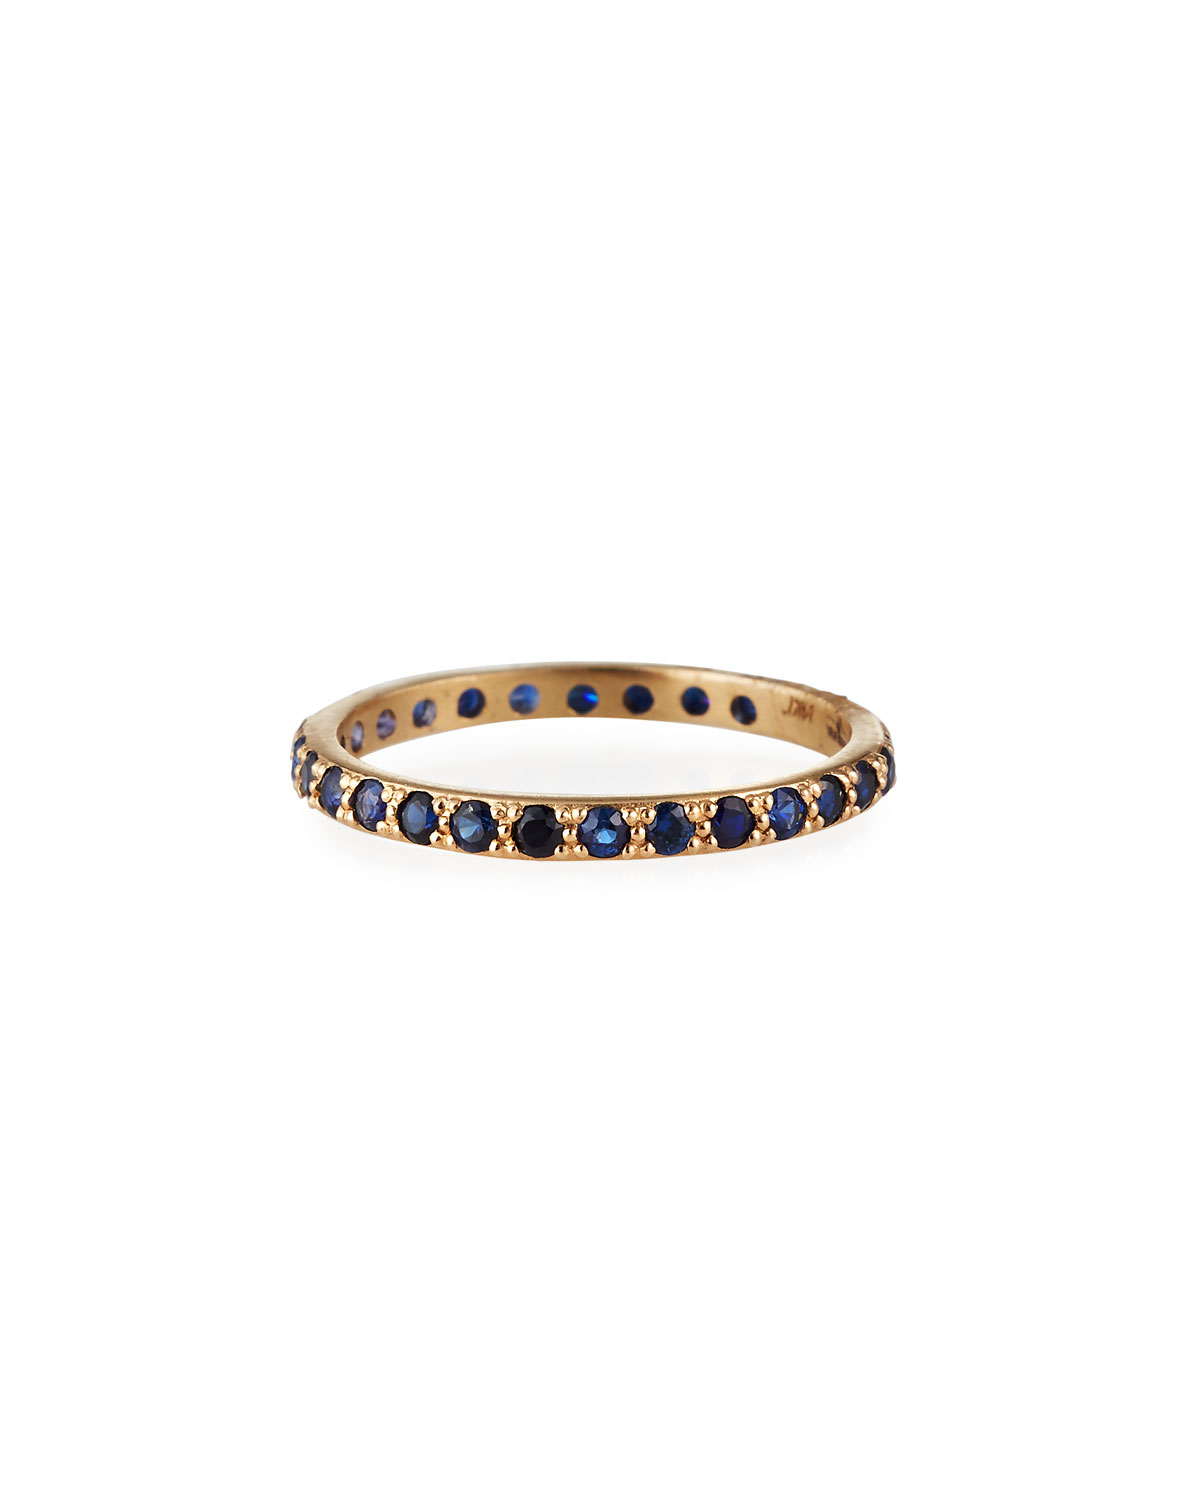 Armenta CUENTO 14K ROSE GOLD BLUE SAPPHIRE STACK BAND